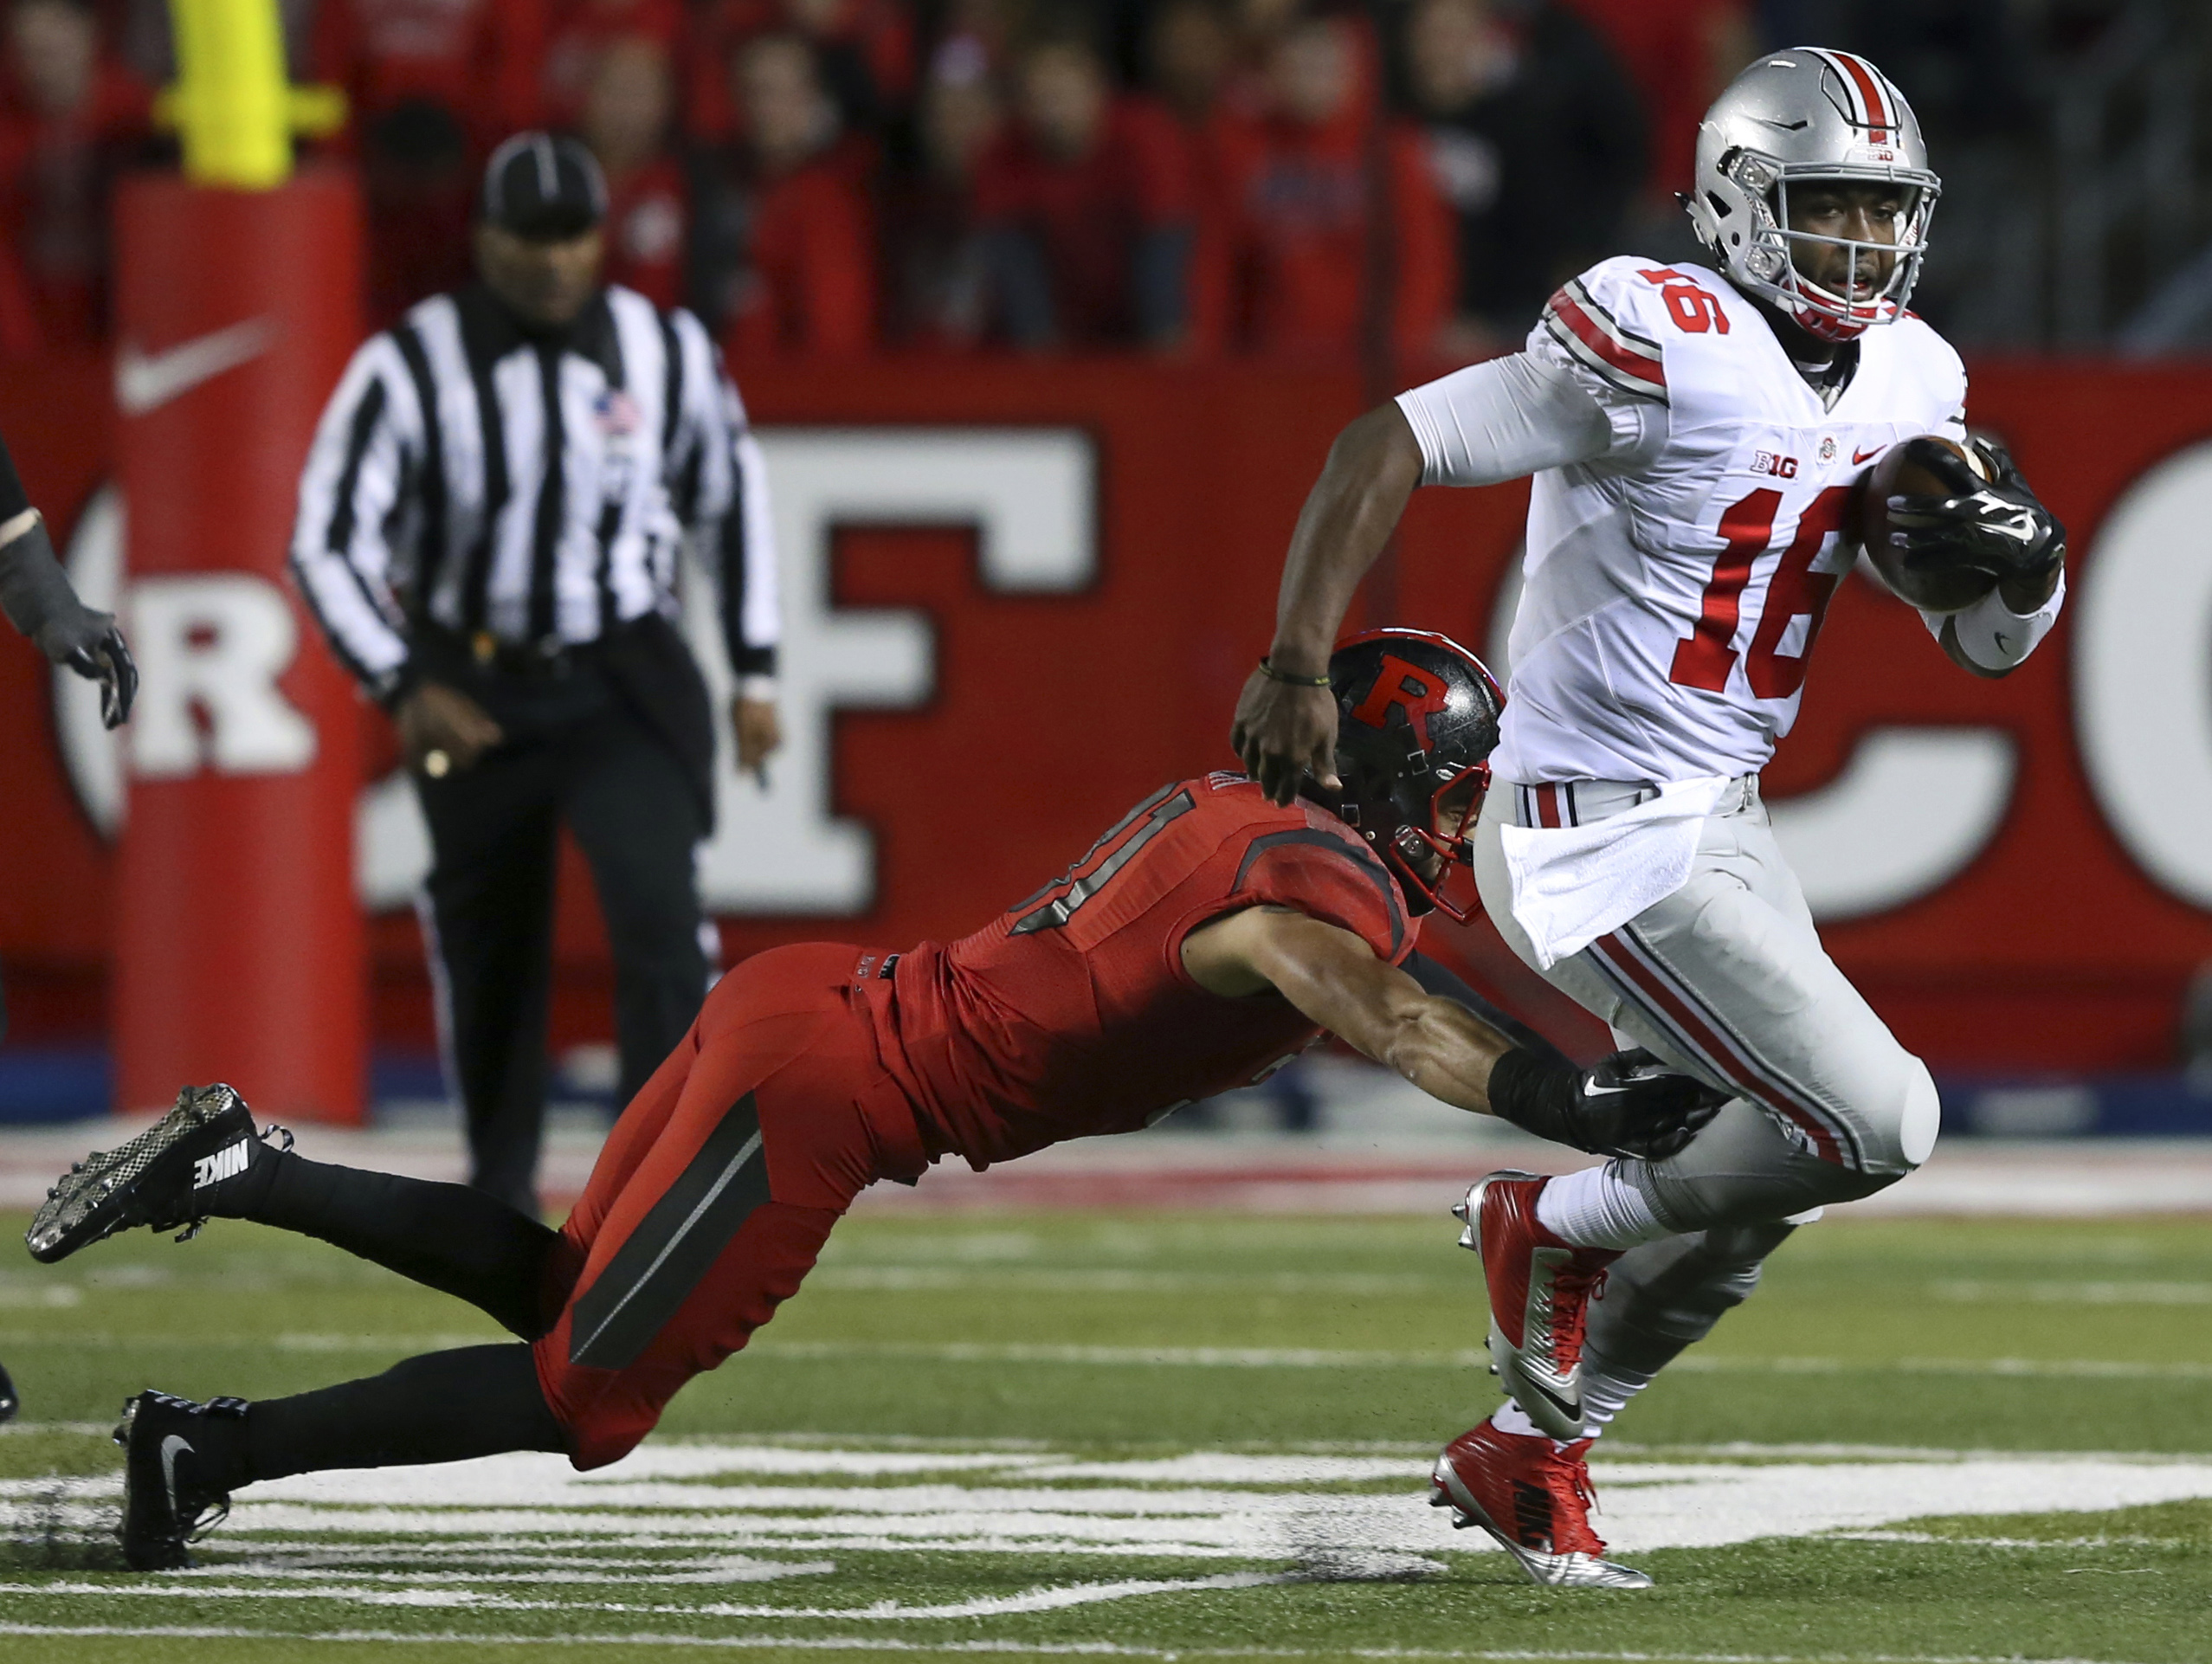 Ohio State quarterback J.T. Barrett (16) breaks a tackle by Rutgers defensive back Anthony Cioffi (31) during the first half of an NCAA college football game Saturday, Oct. 24, 2015, in Piscataway, N.J. (AP Photo/Mel Evans)